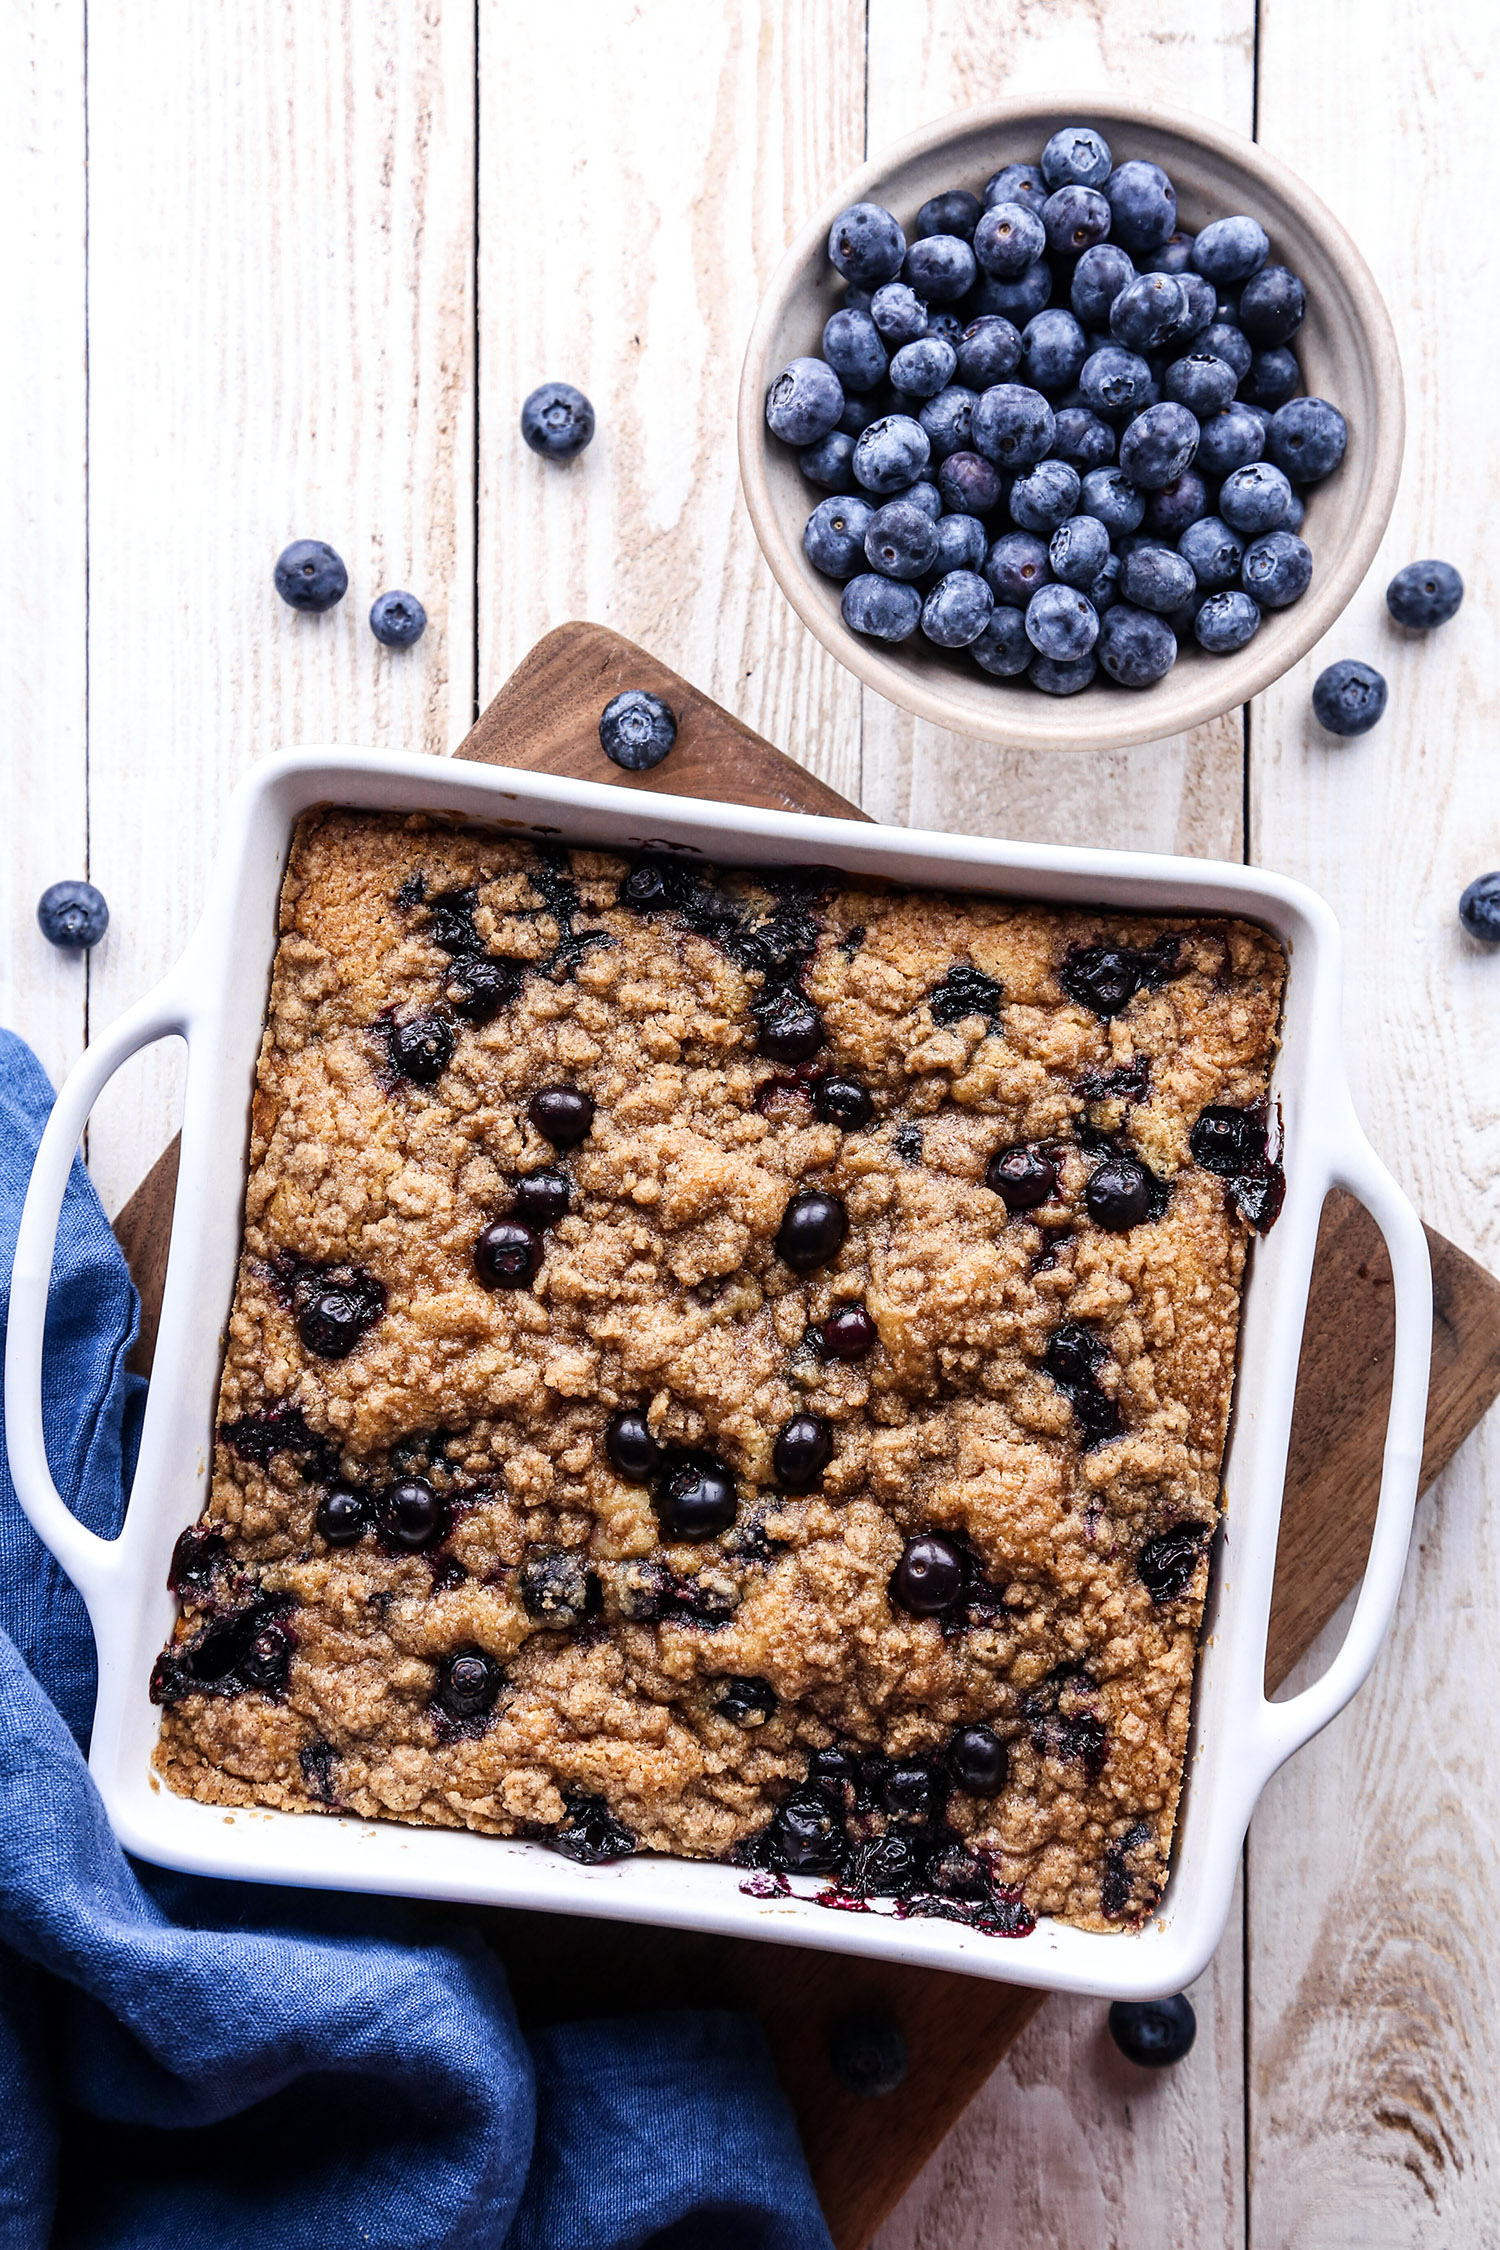 Blueberry Buckle | Vegan friendly with gluten and refined sugar free options.